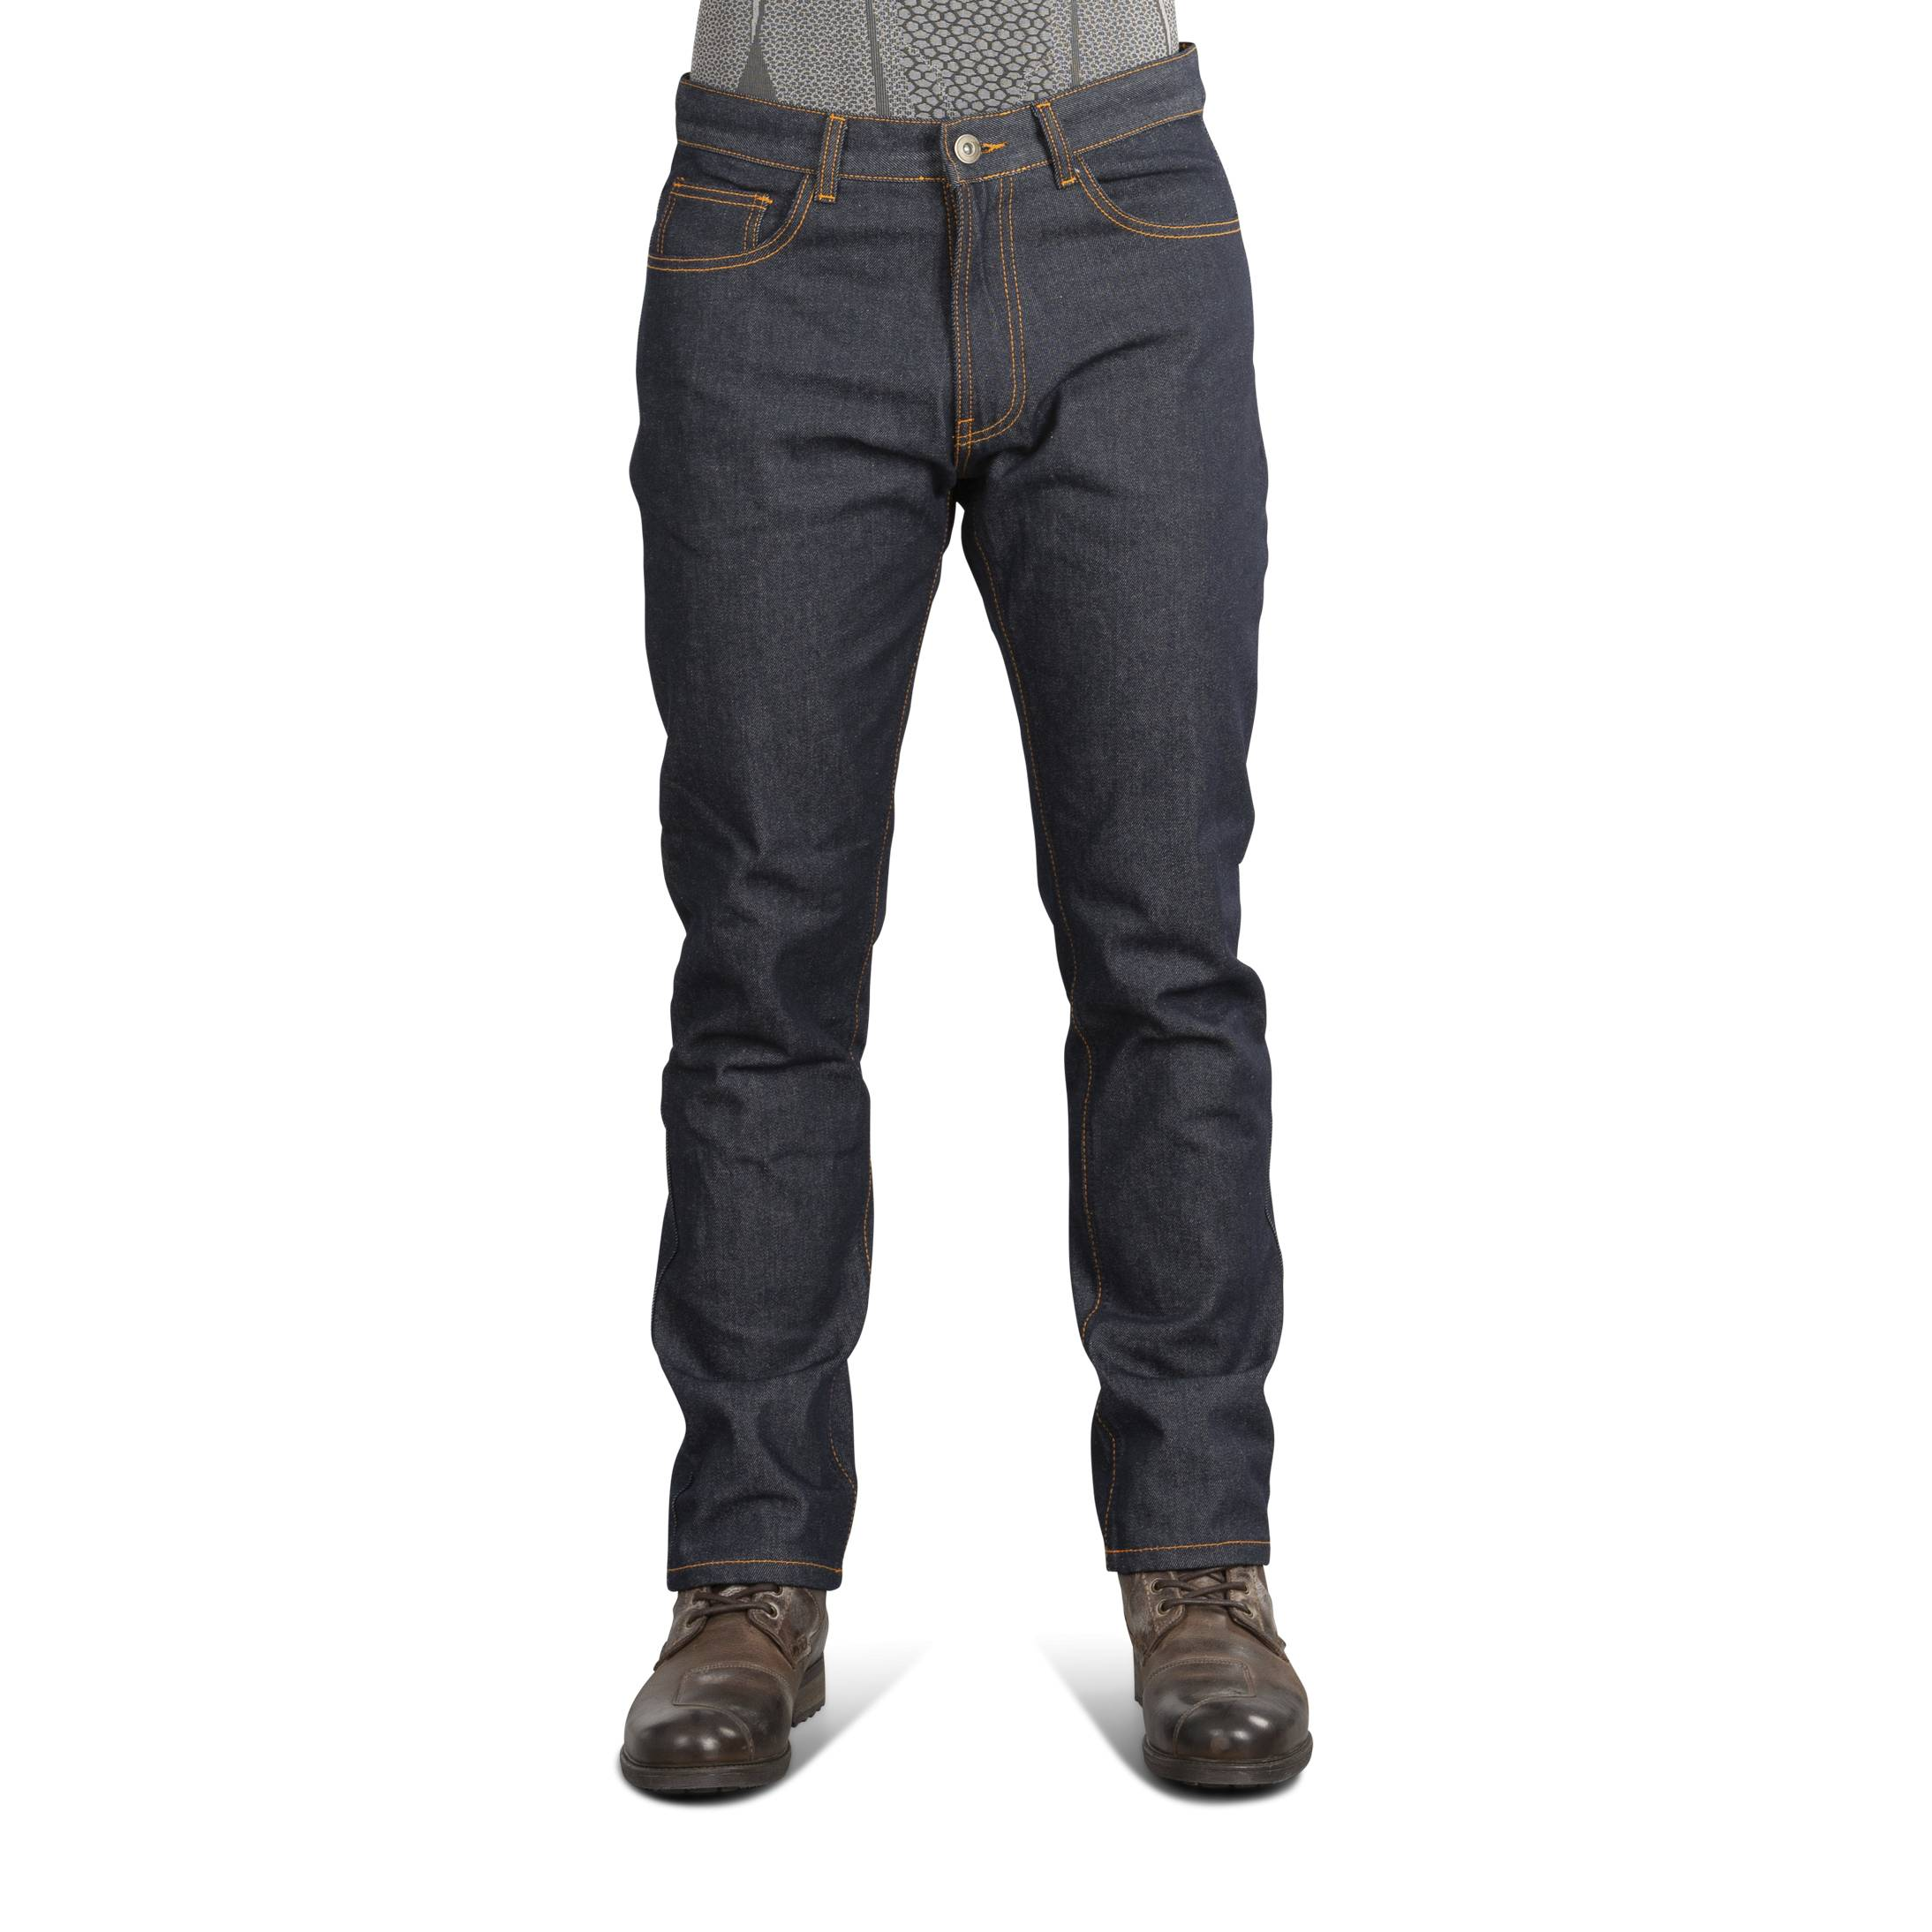 Course Jean Moto Course Heavy Duty Anti-Fit Raw Denim W38 L36